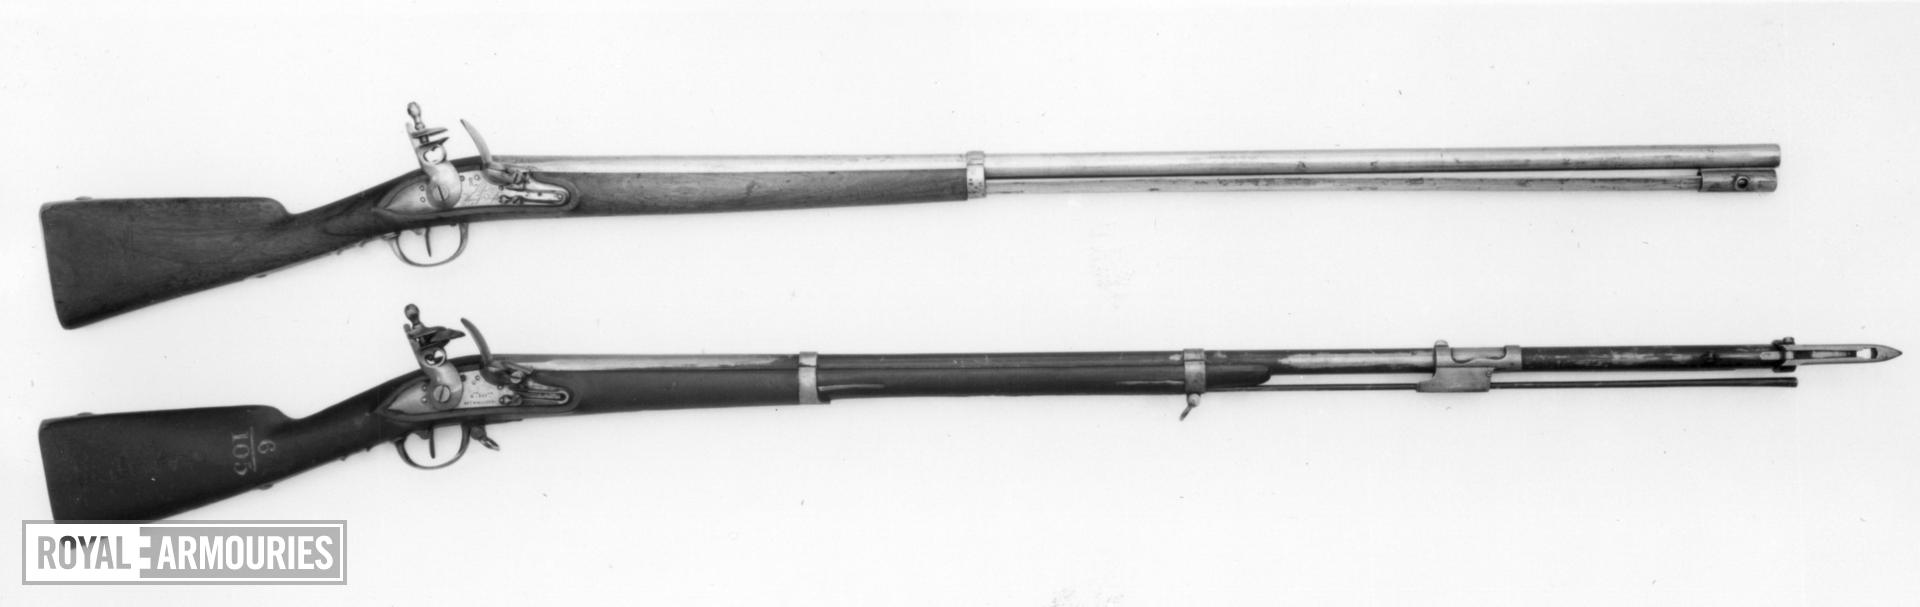 Flintlock muzzle-loading military musket - Experimental Model 1777/XIII